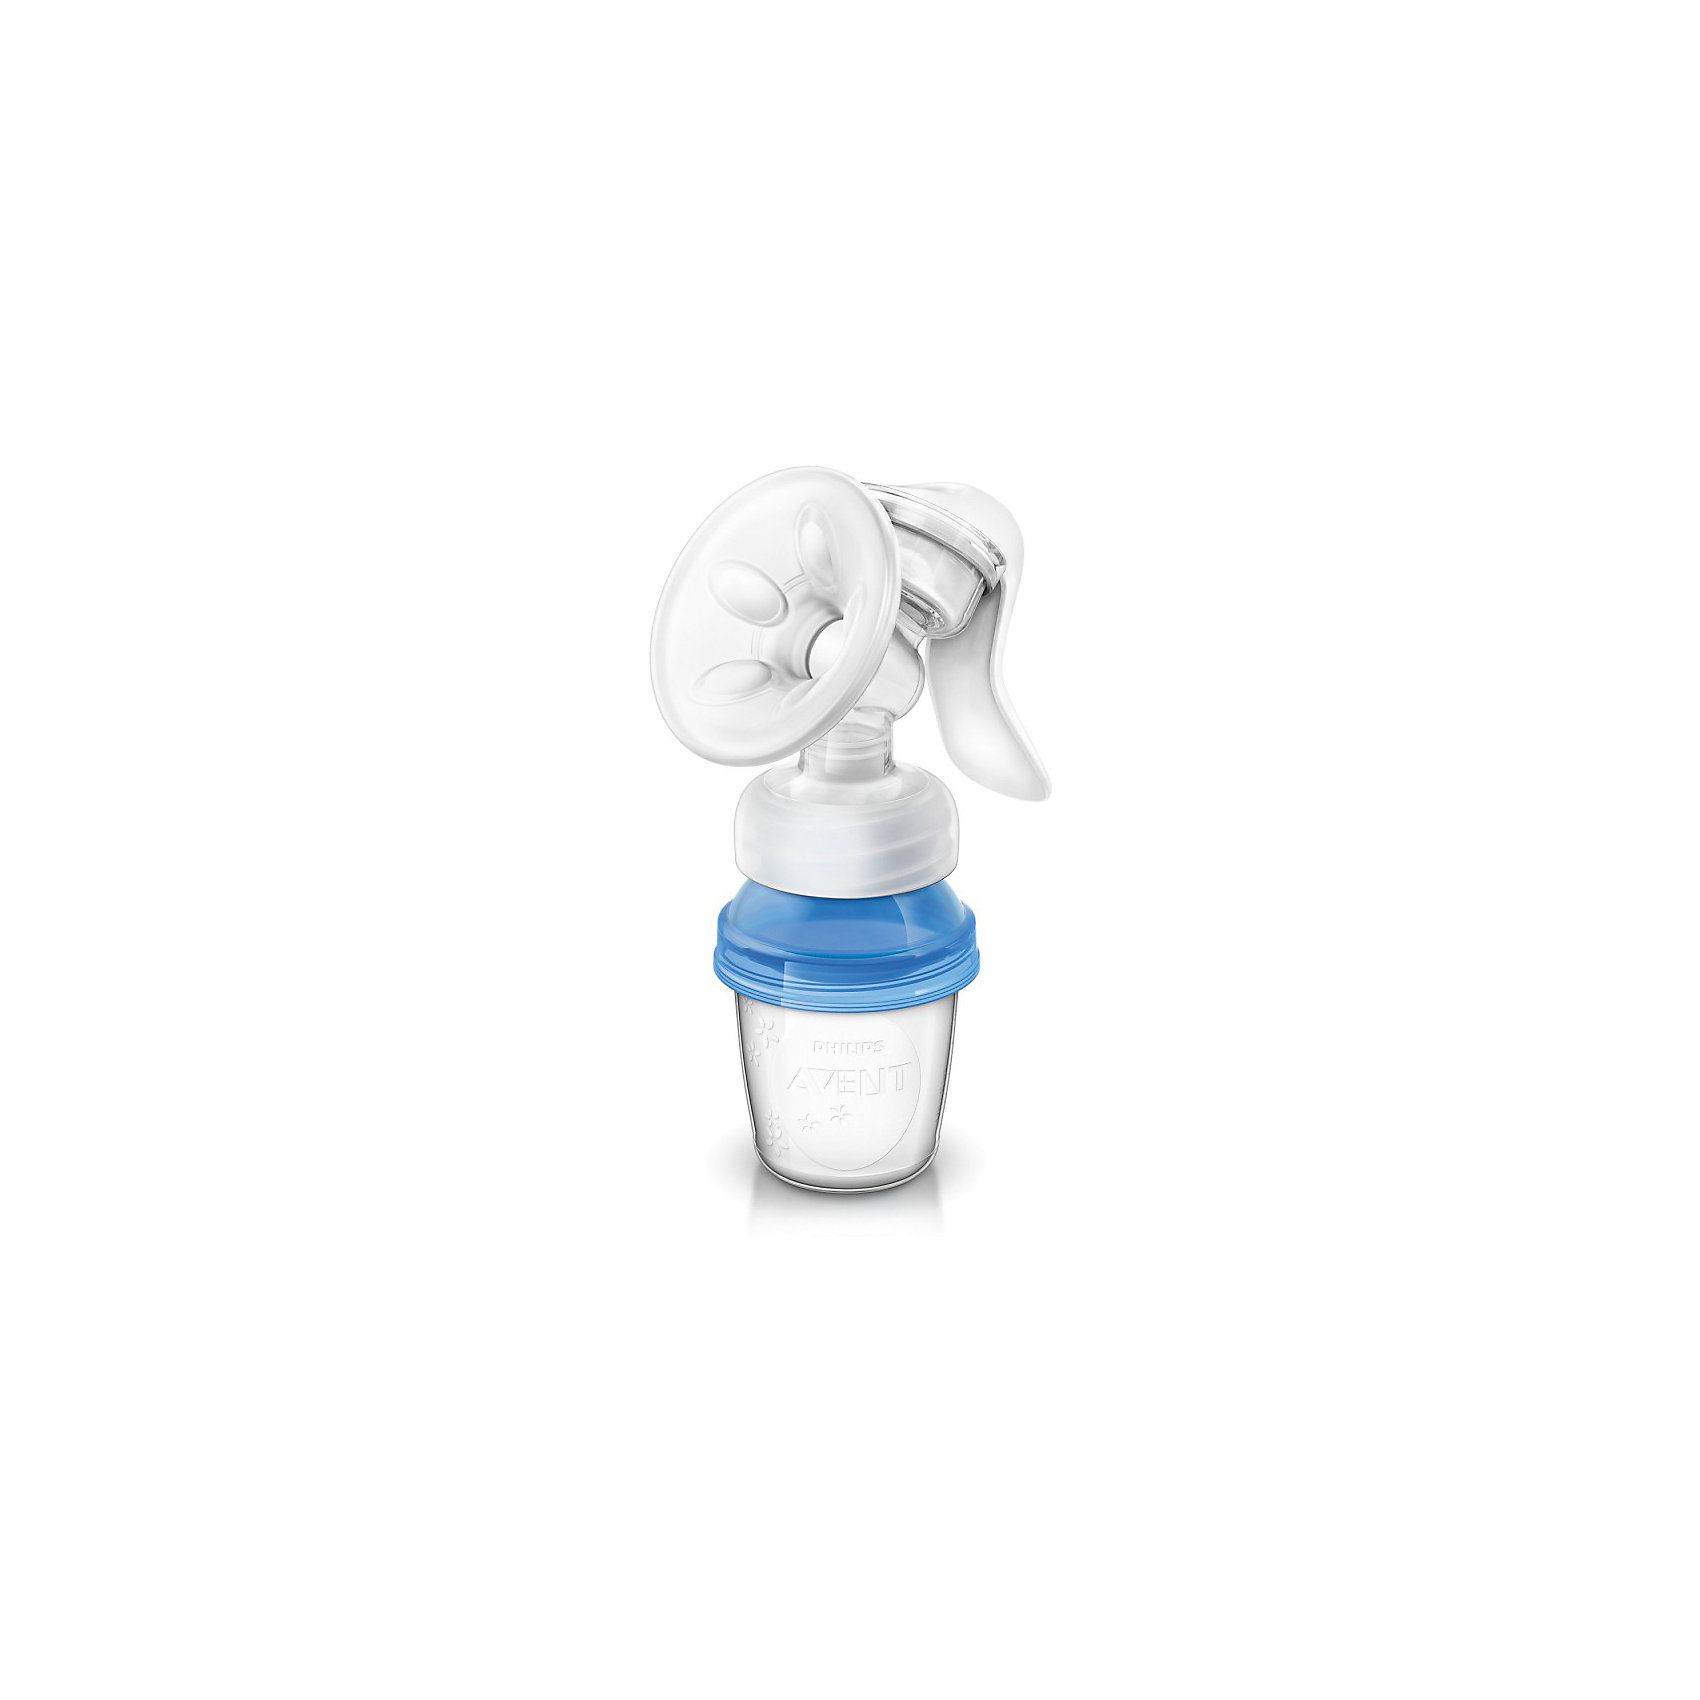 ������ ����������� Natural, Philips Avent (PHILIPS AVENT)